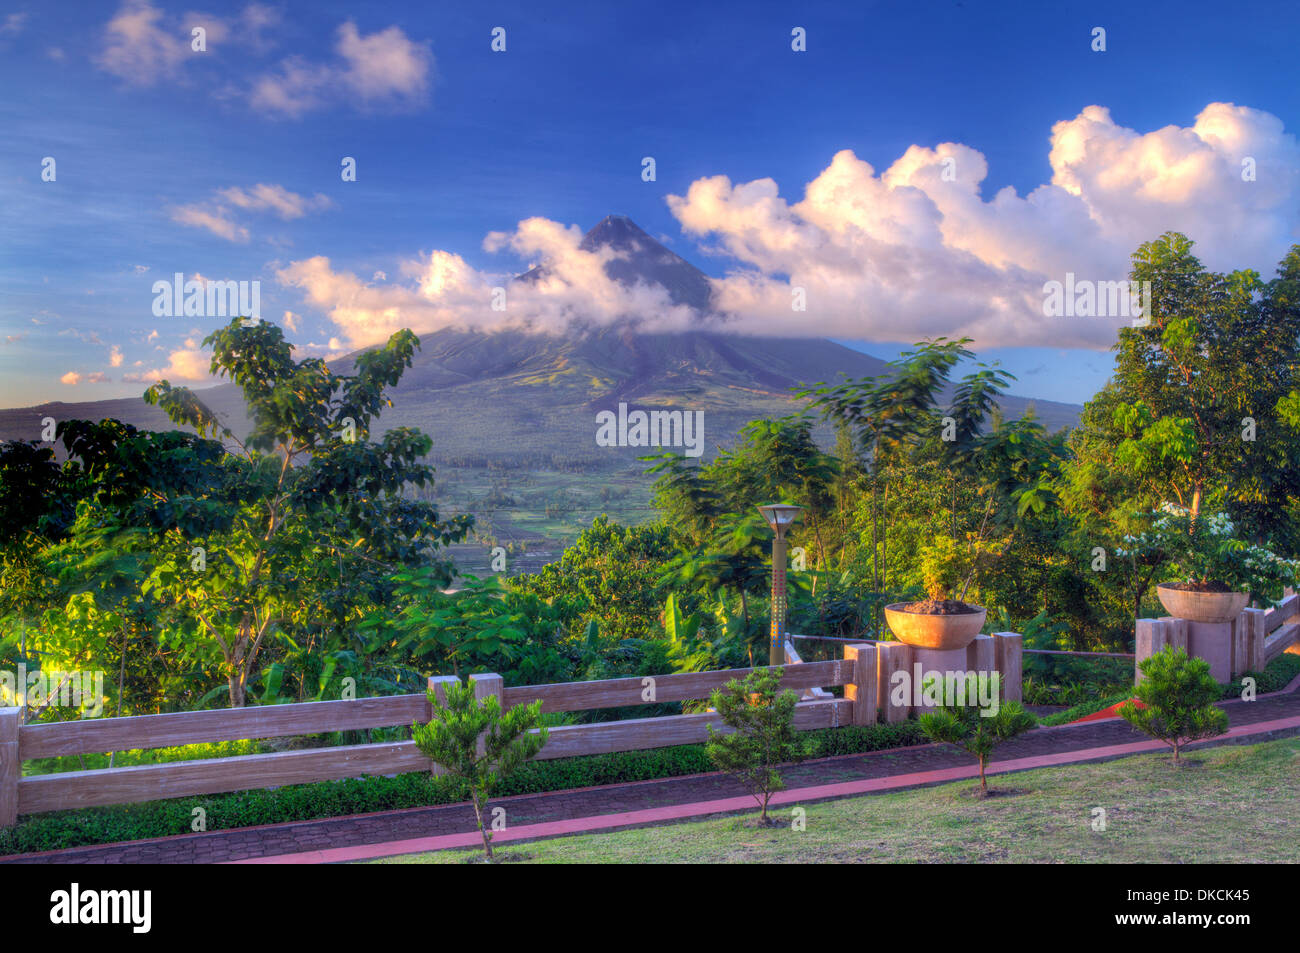 Mayon Volcano on Luzon Island, Philippines. - Stock Image